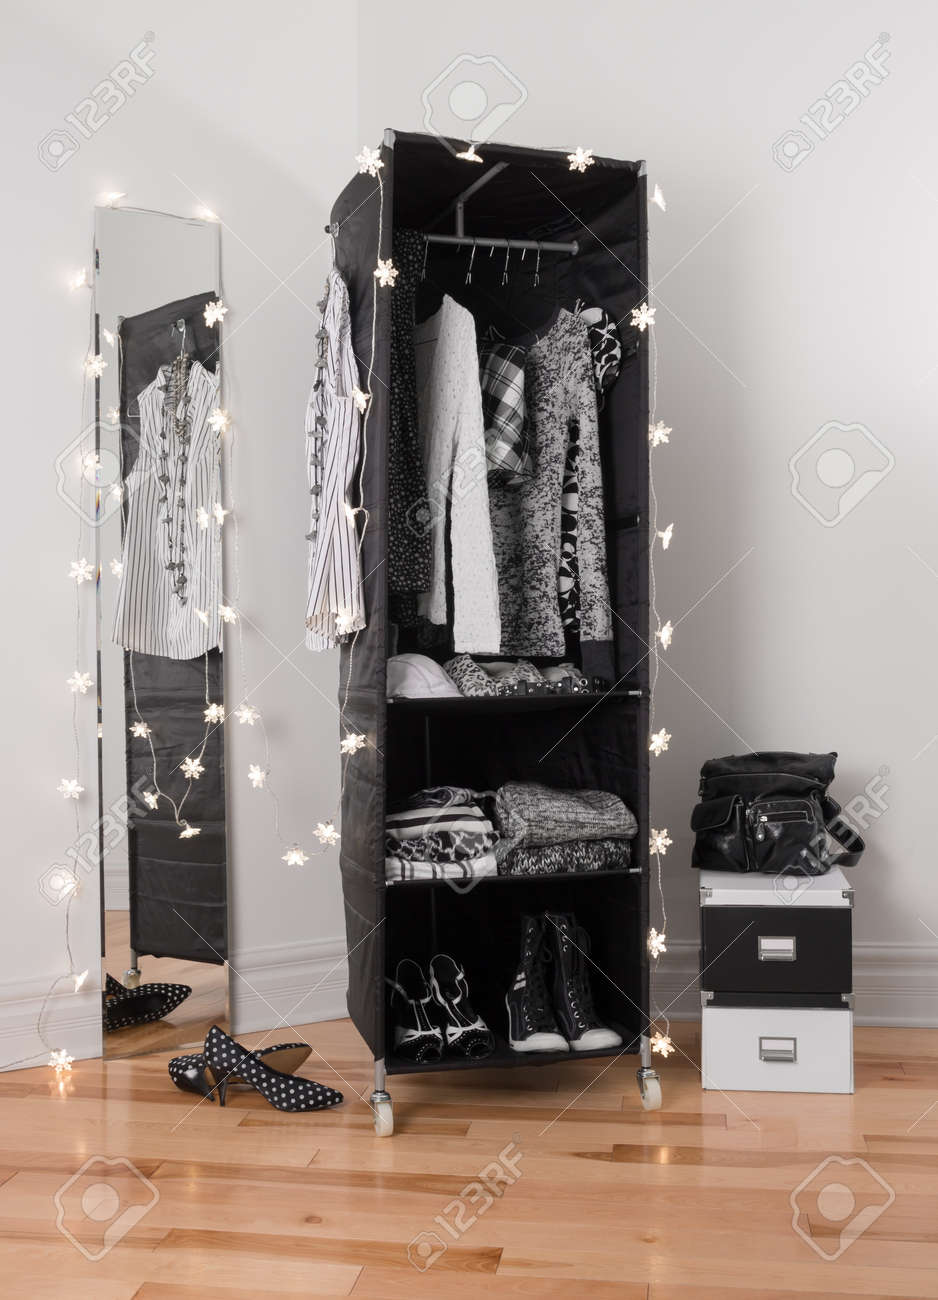 Lights Decorating A Mirror And Clothes Organizer With Black White Clothing Stock Photo